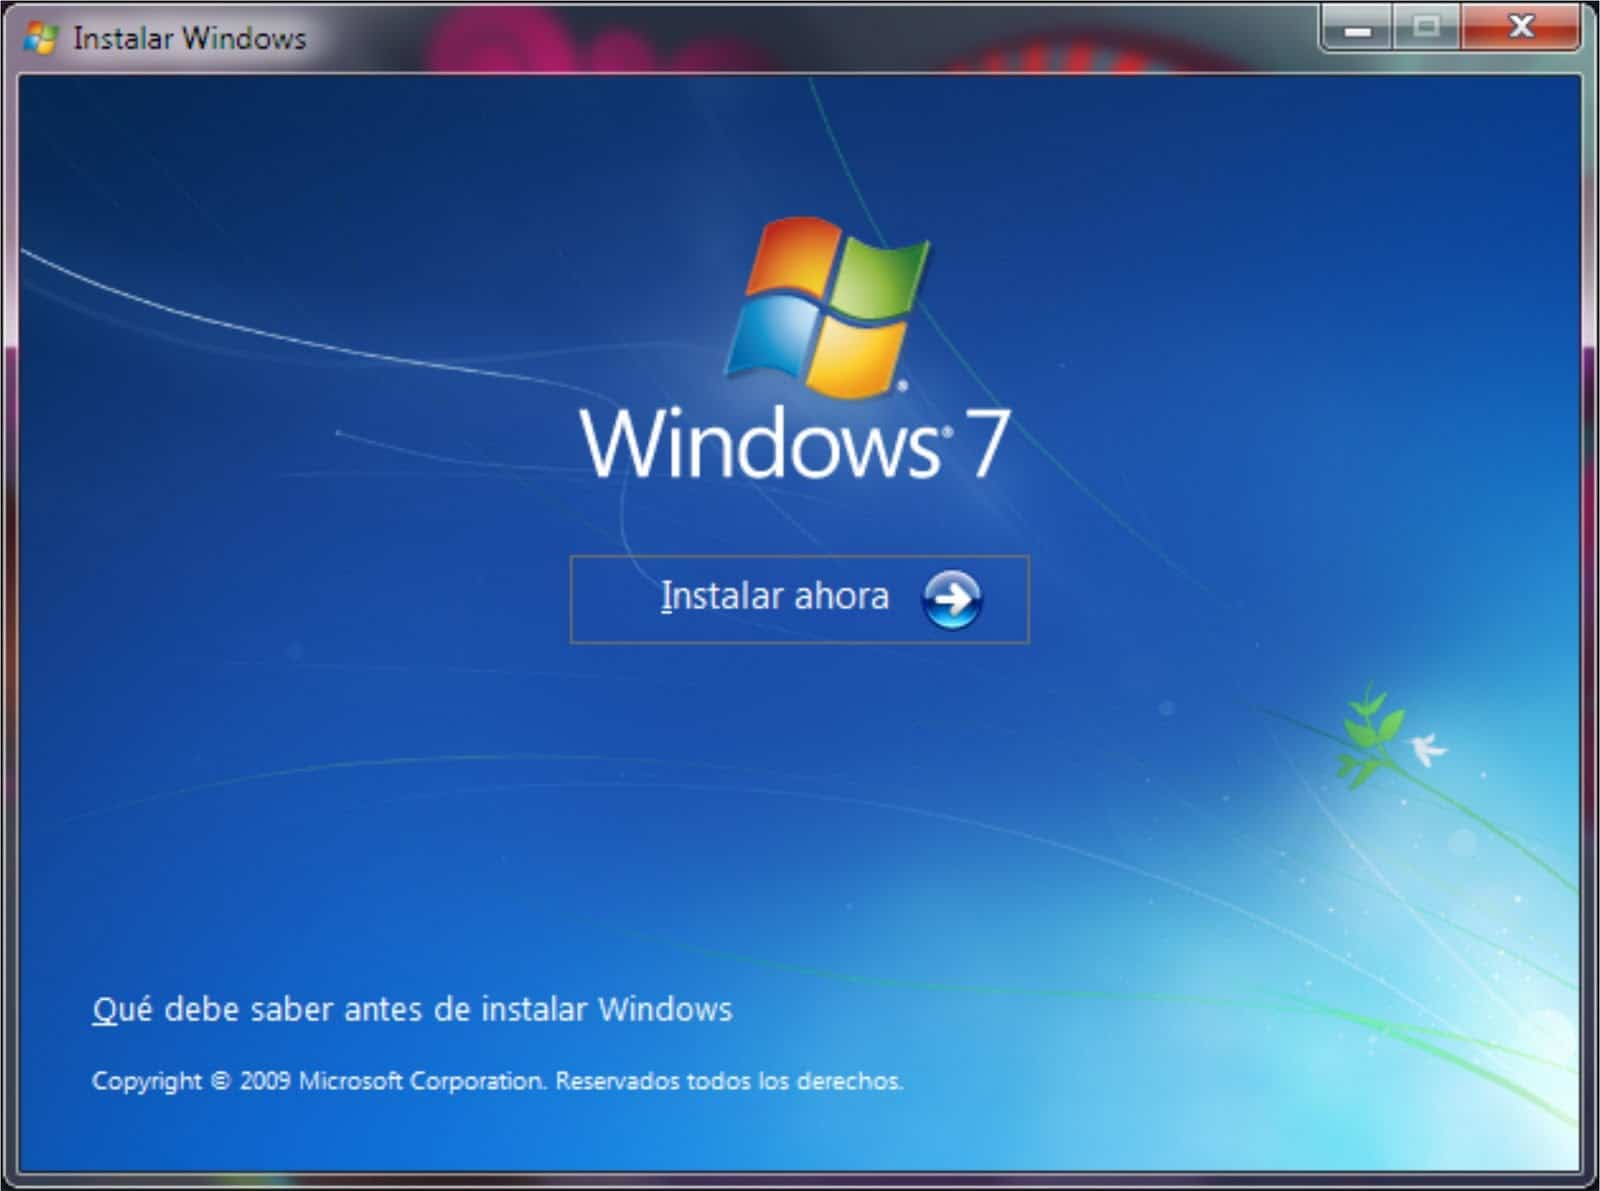 Windows 7, pantalla de instalacion